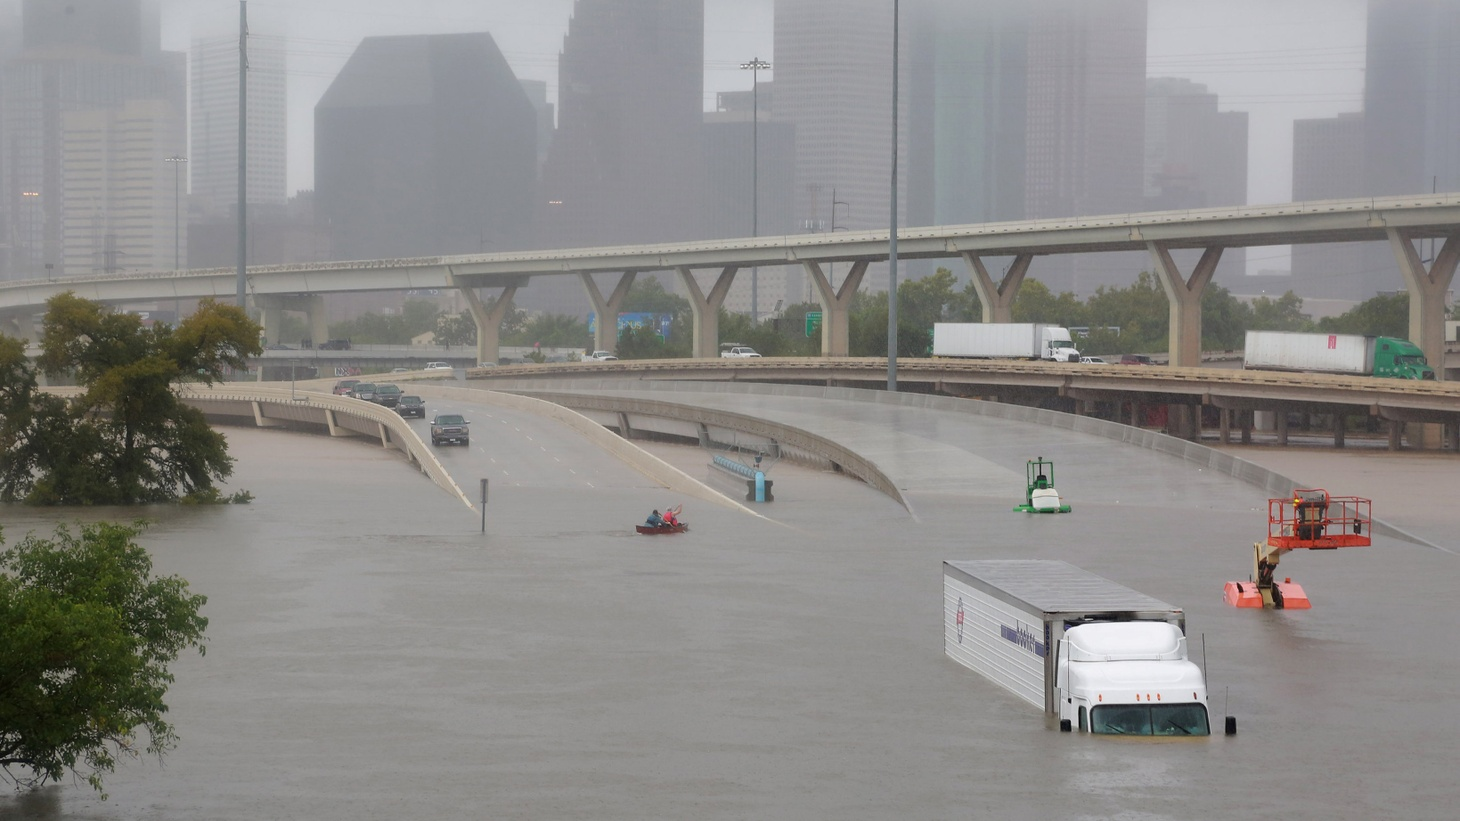 """One weather expert says what we're seeing in Houston, """"could go down as the worst flood disaster in US history."""" We hear about Houston — how it became so vulnerable to massive flooding and how President Trump is handling federal assistance."""